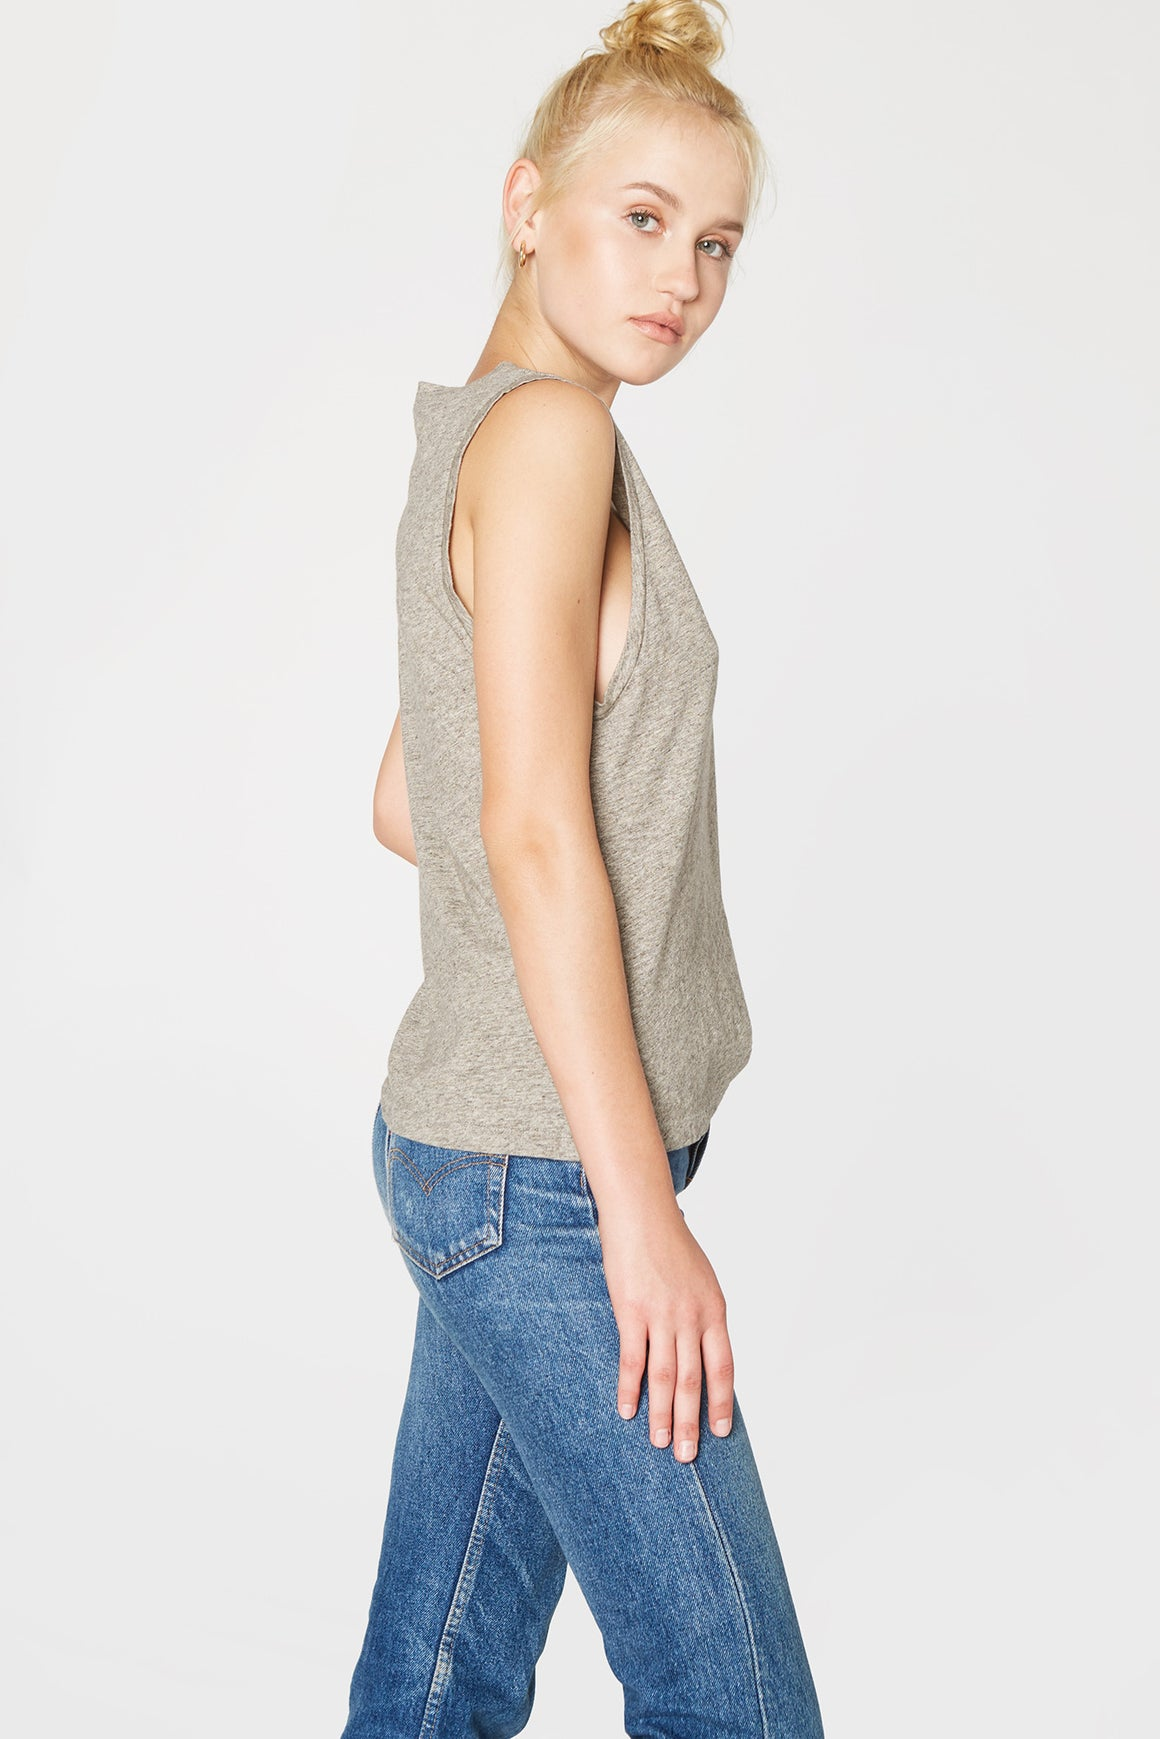 Heather Grey Muscle Tee